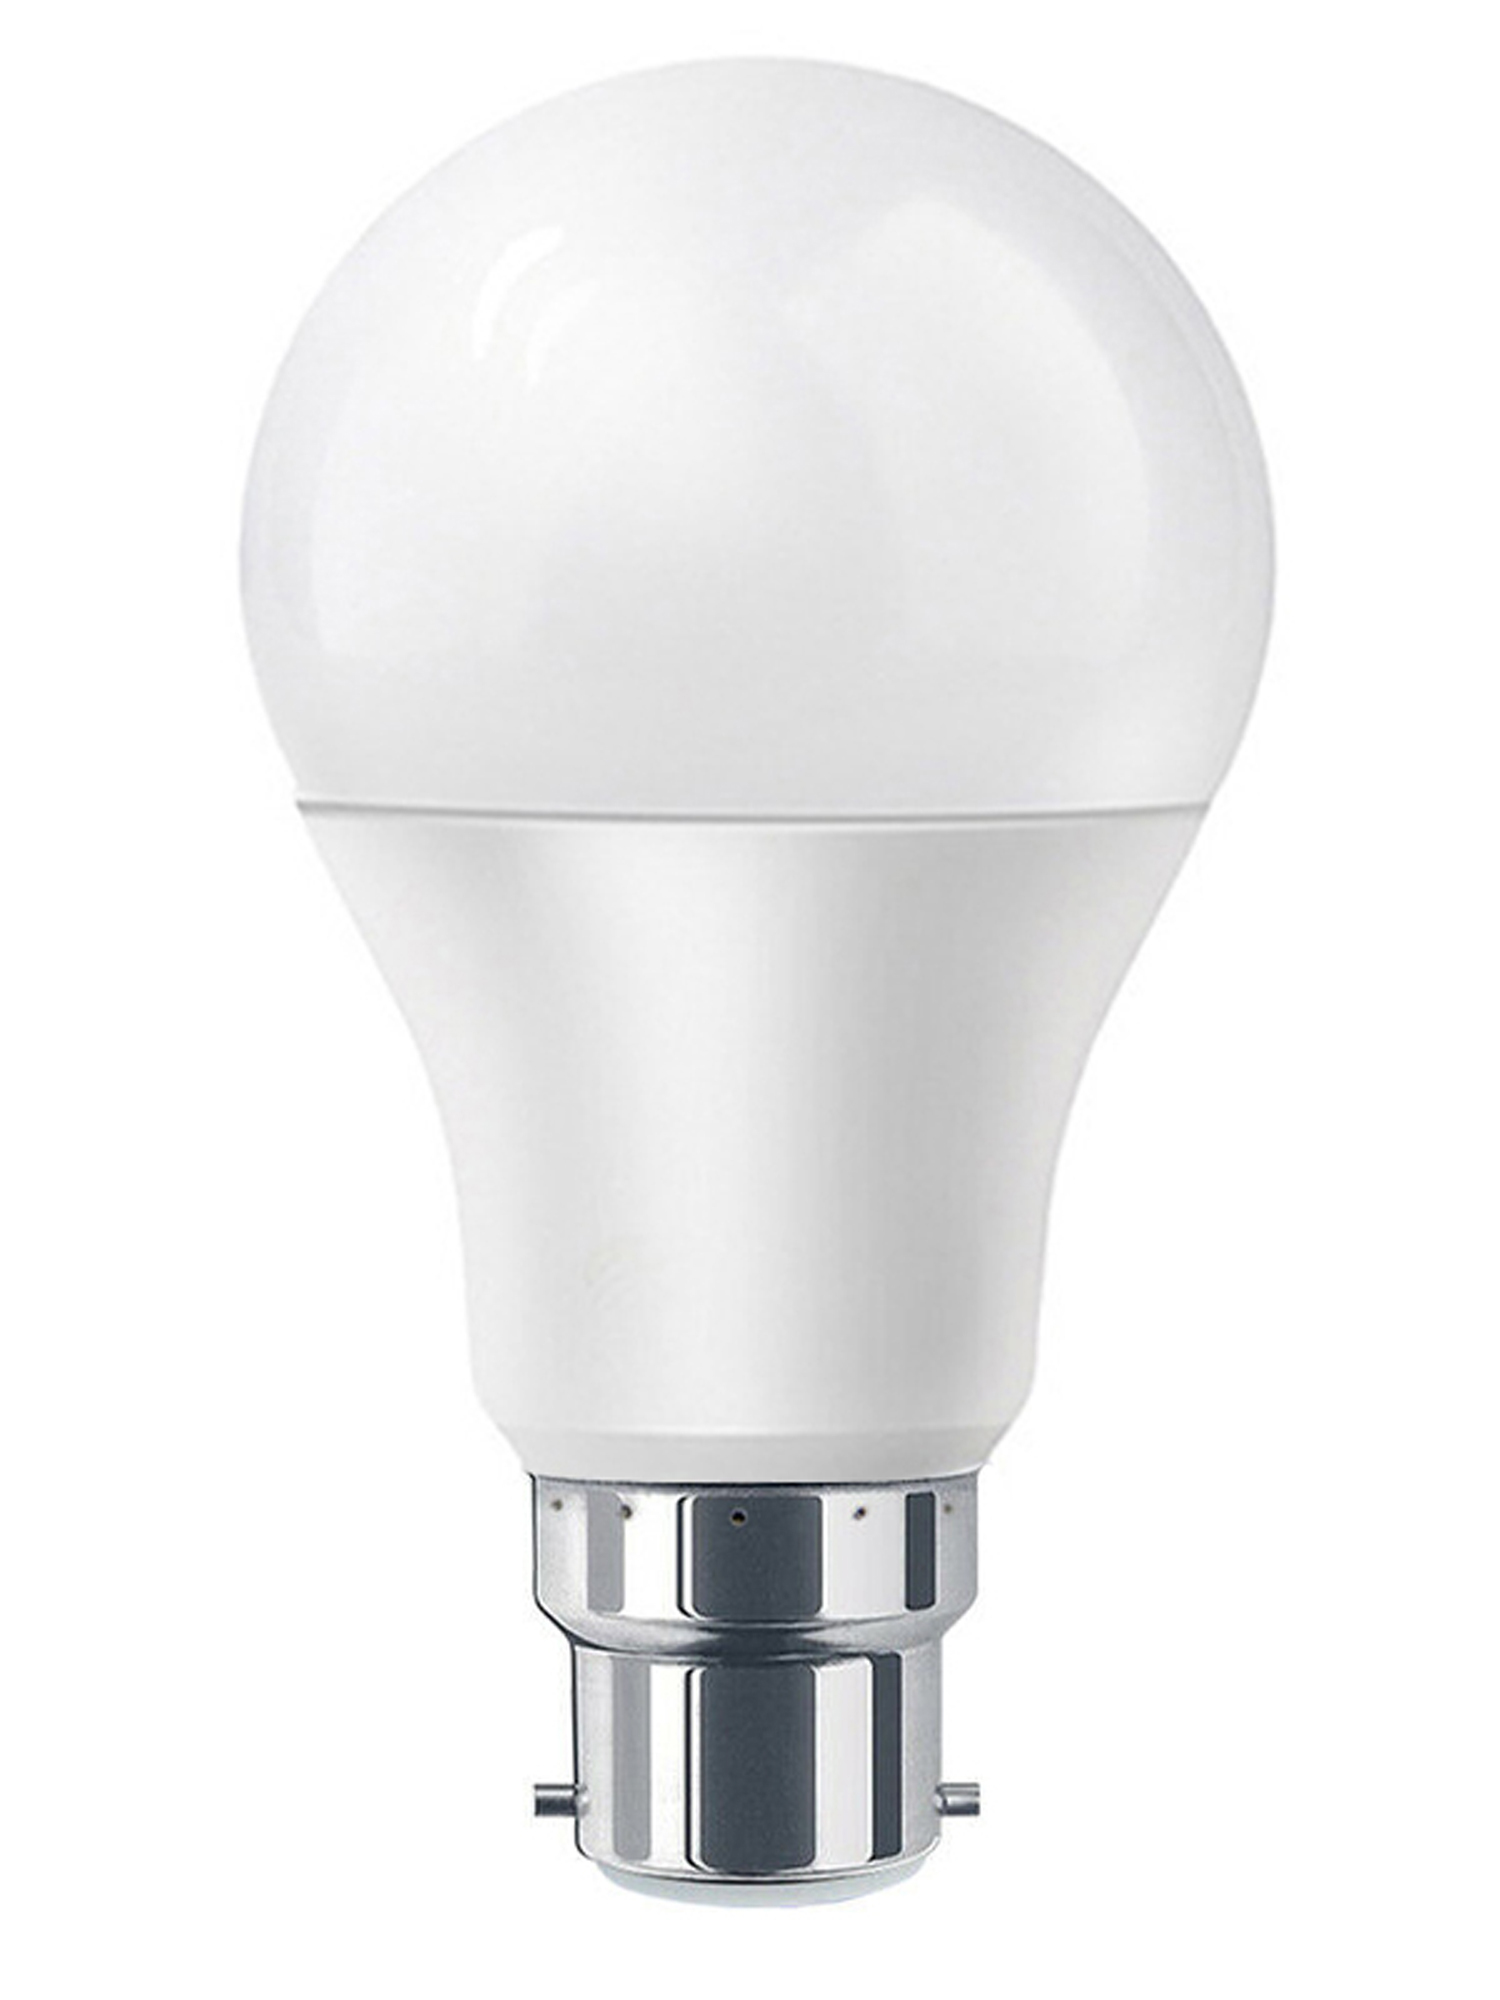 Replacement for Light Bulb//Lamp 100r20//fl Led Replacement Led by Technical Precision